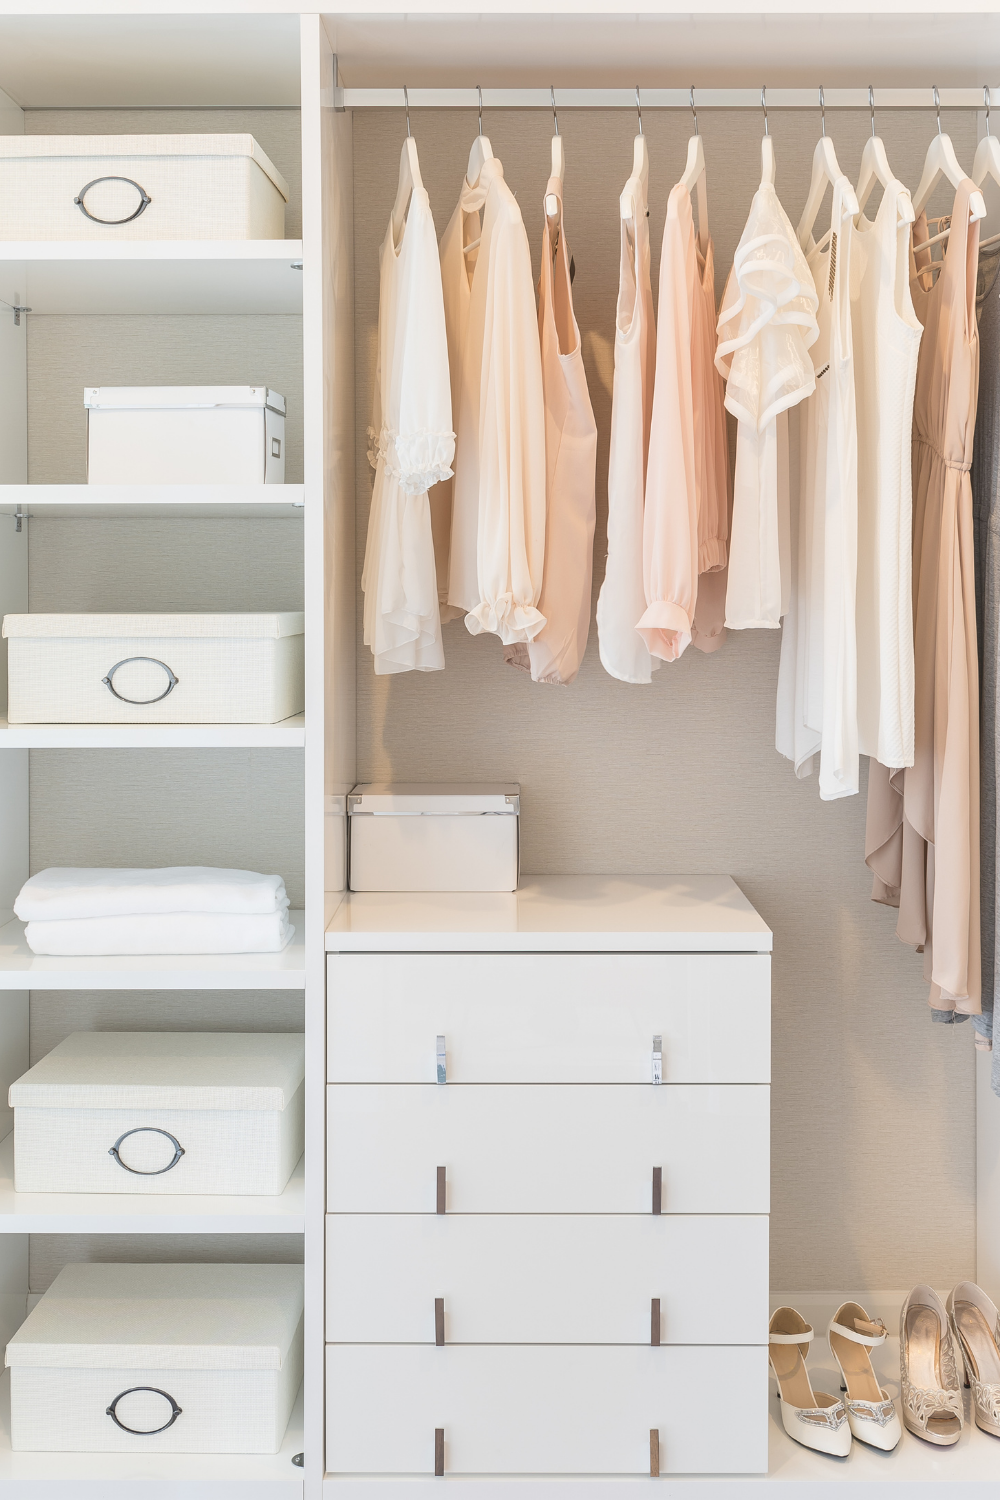 Let's Make Sure Your Closet Is Perfect